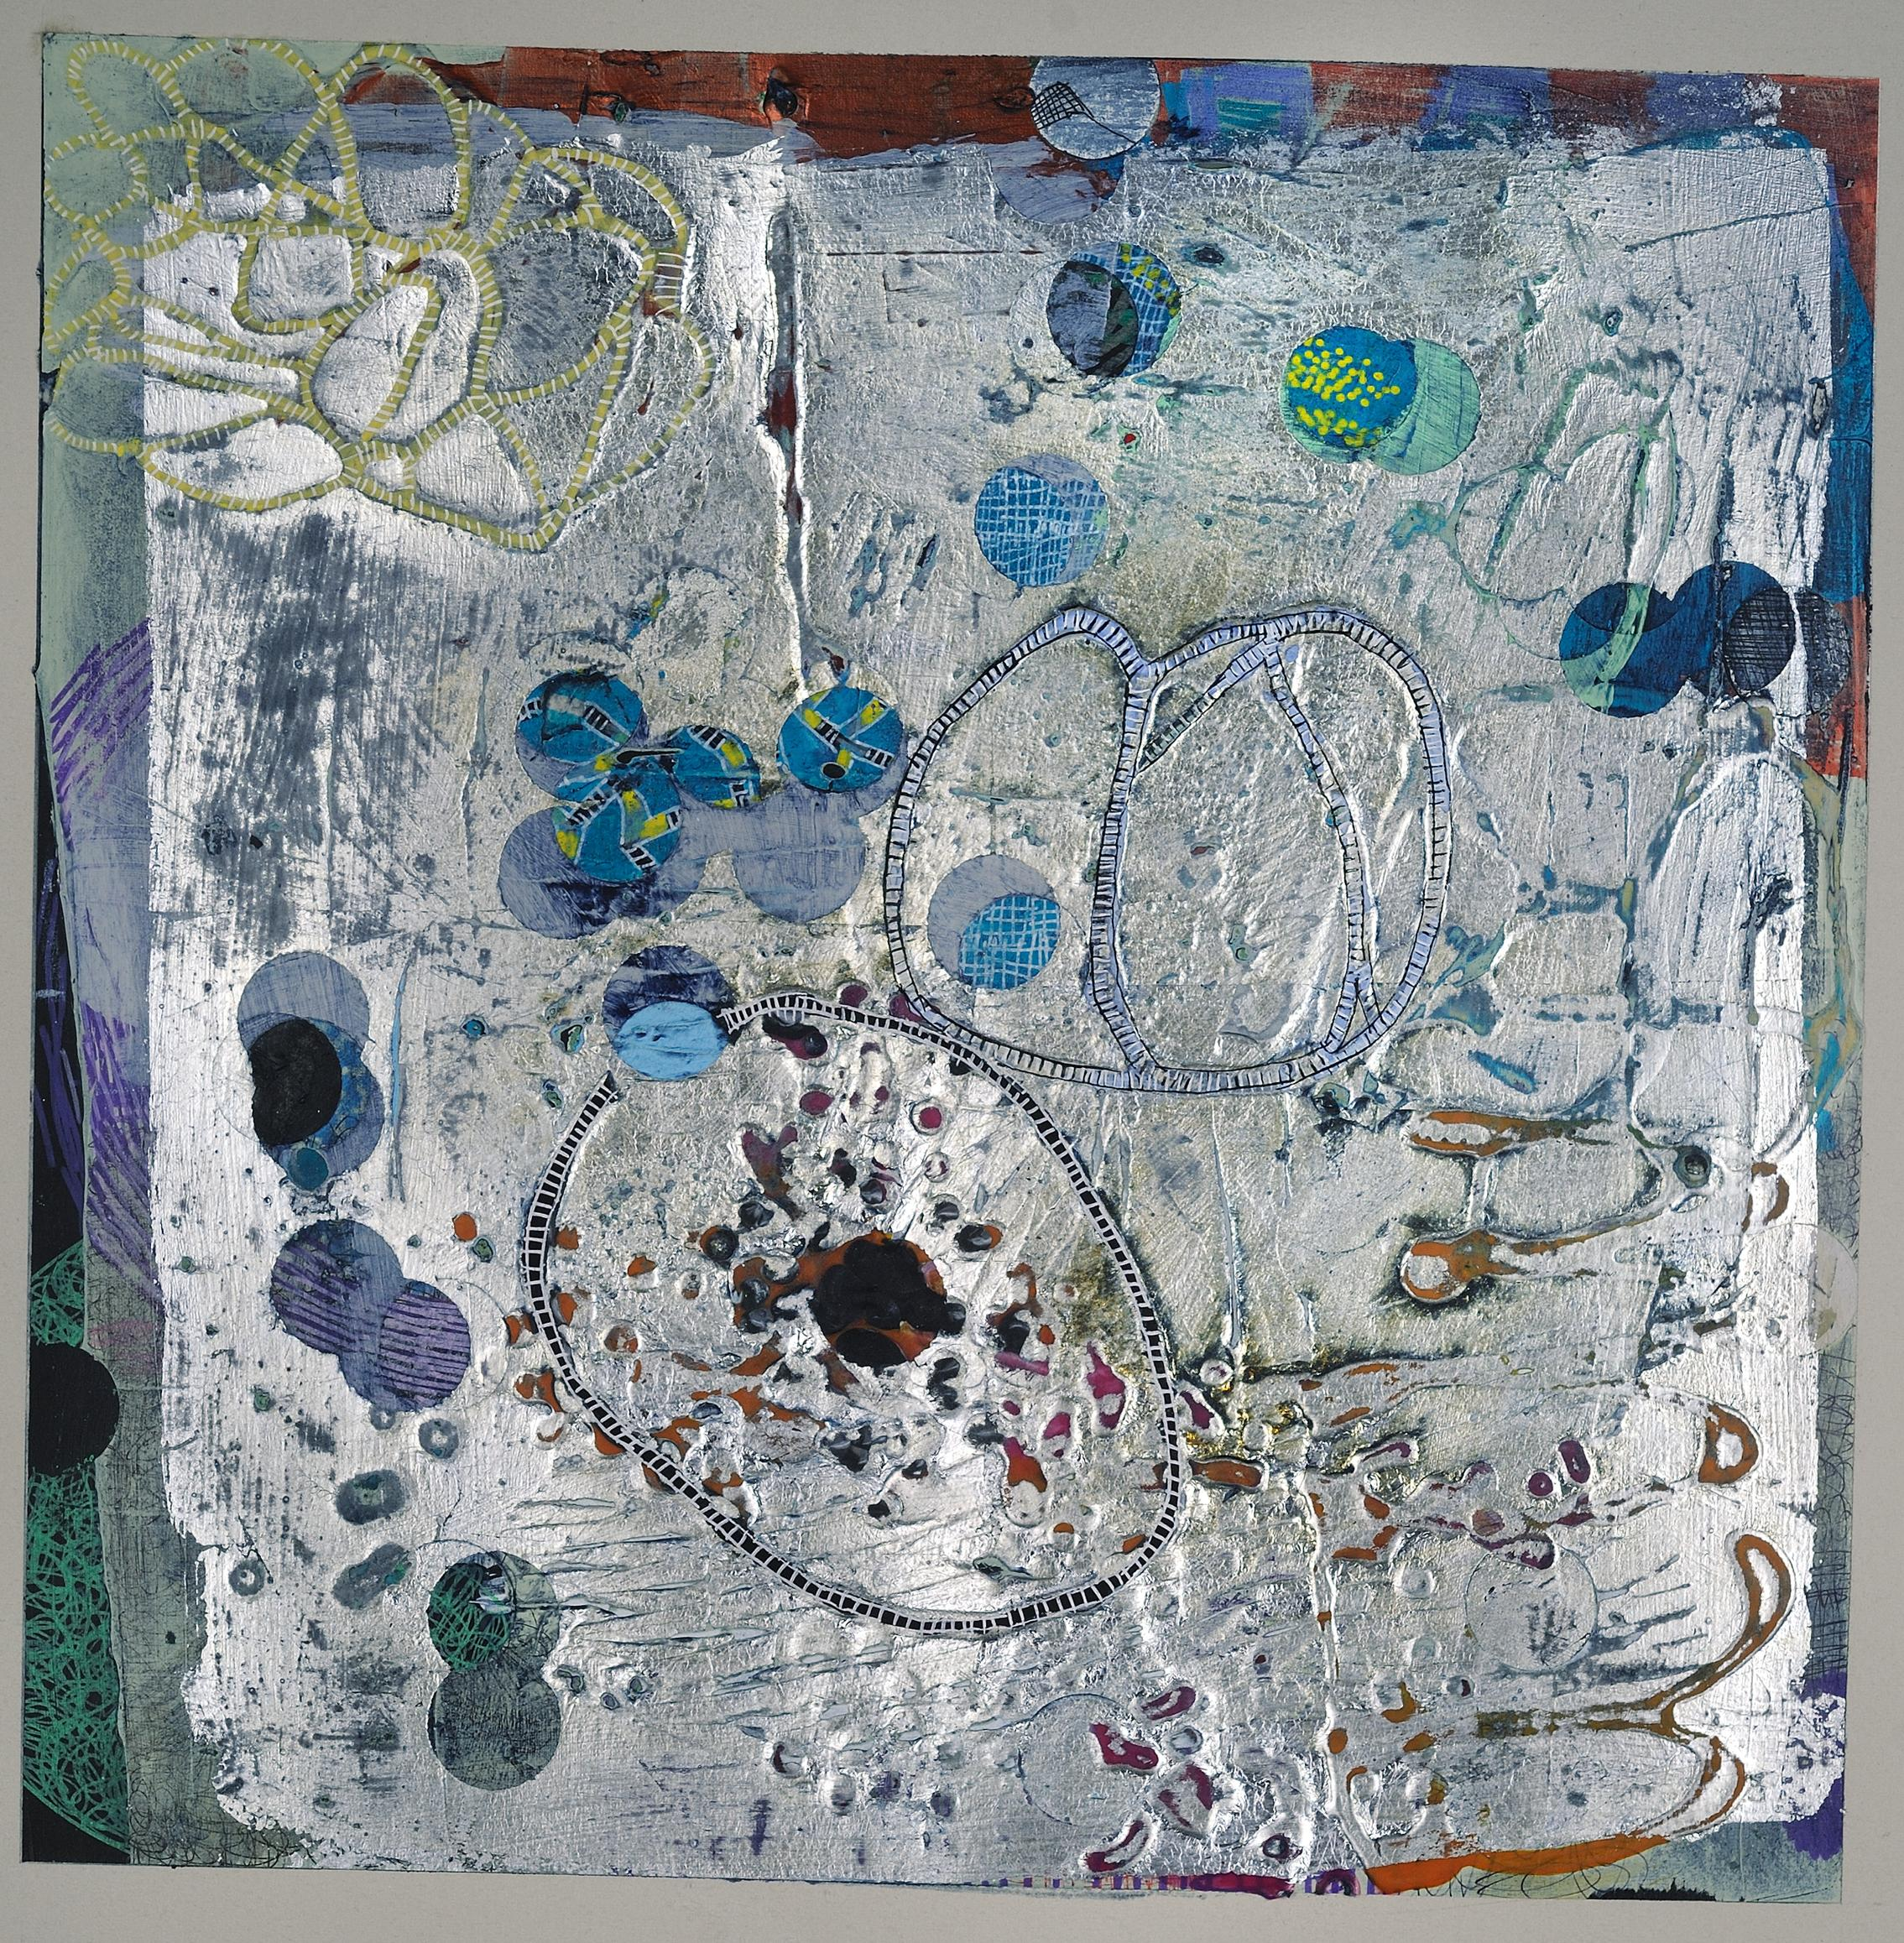 Confluence #4, small abstract work on paper, multicolored and silver